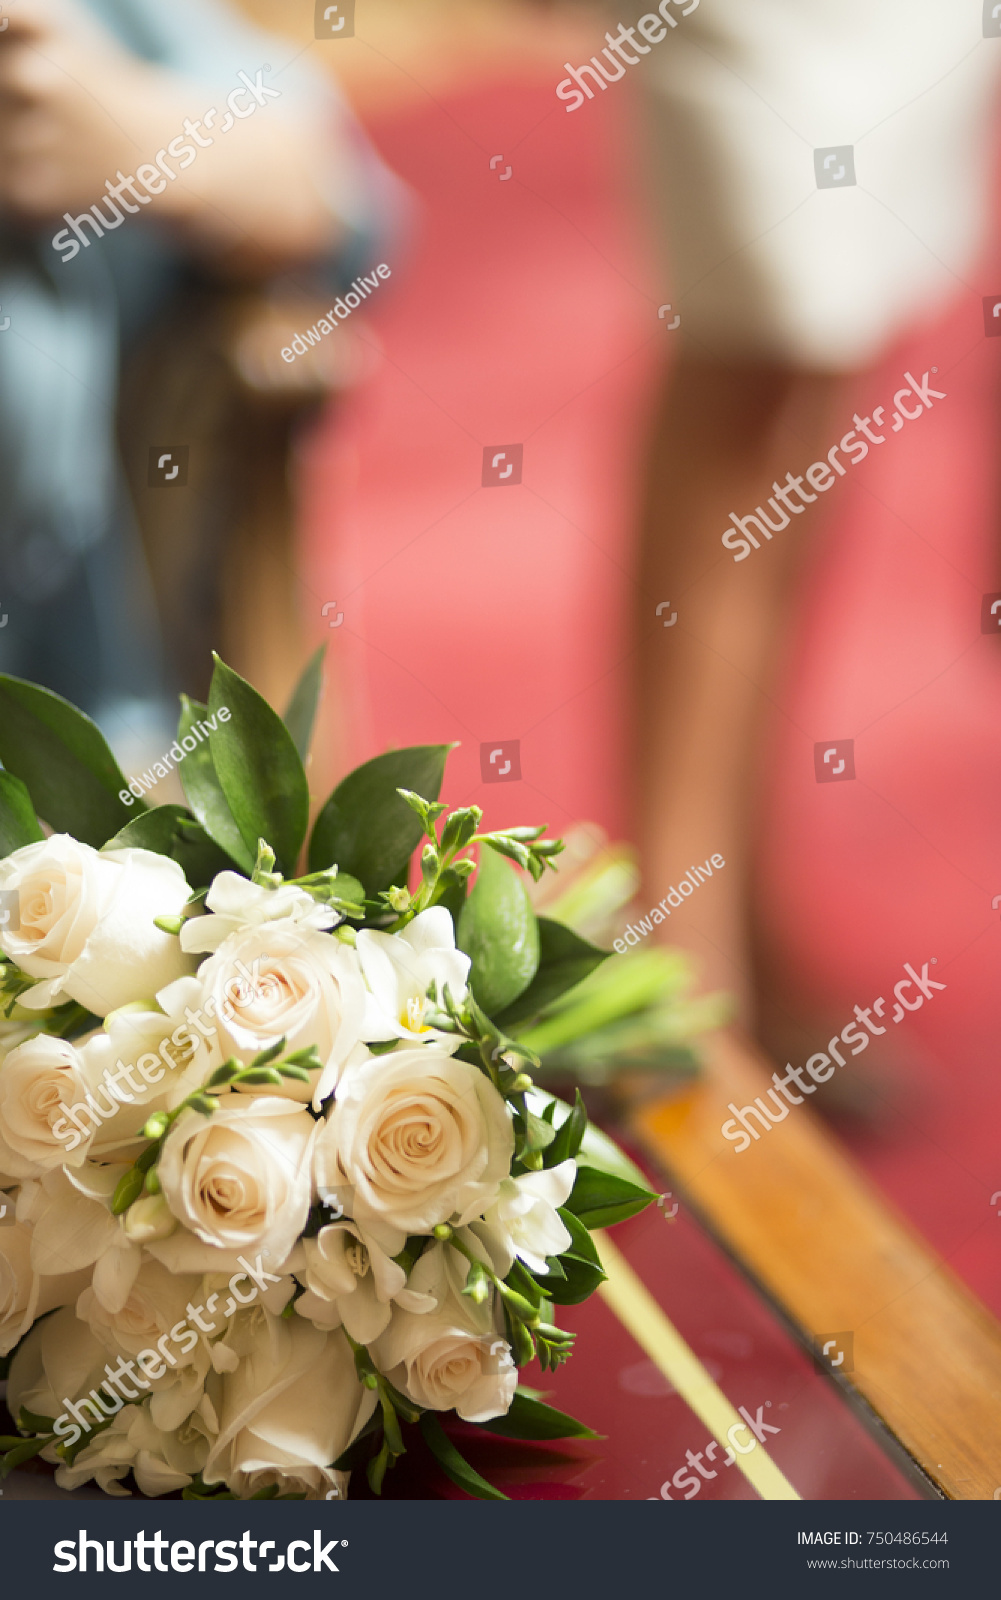 Civil non religious wedding ceremony registry stock photo edit now civil non religious wedding ceremony registry office bridal bouquet of roses flowers of the bride izmirmasajfo